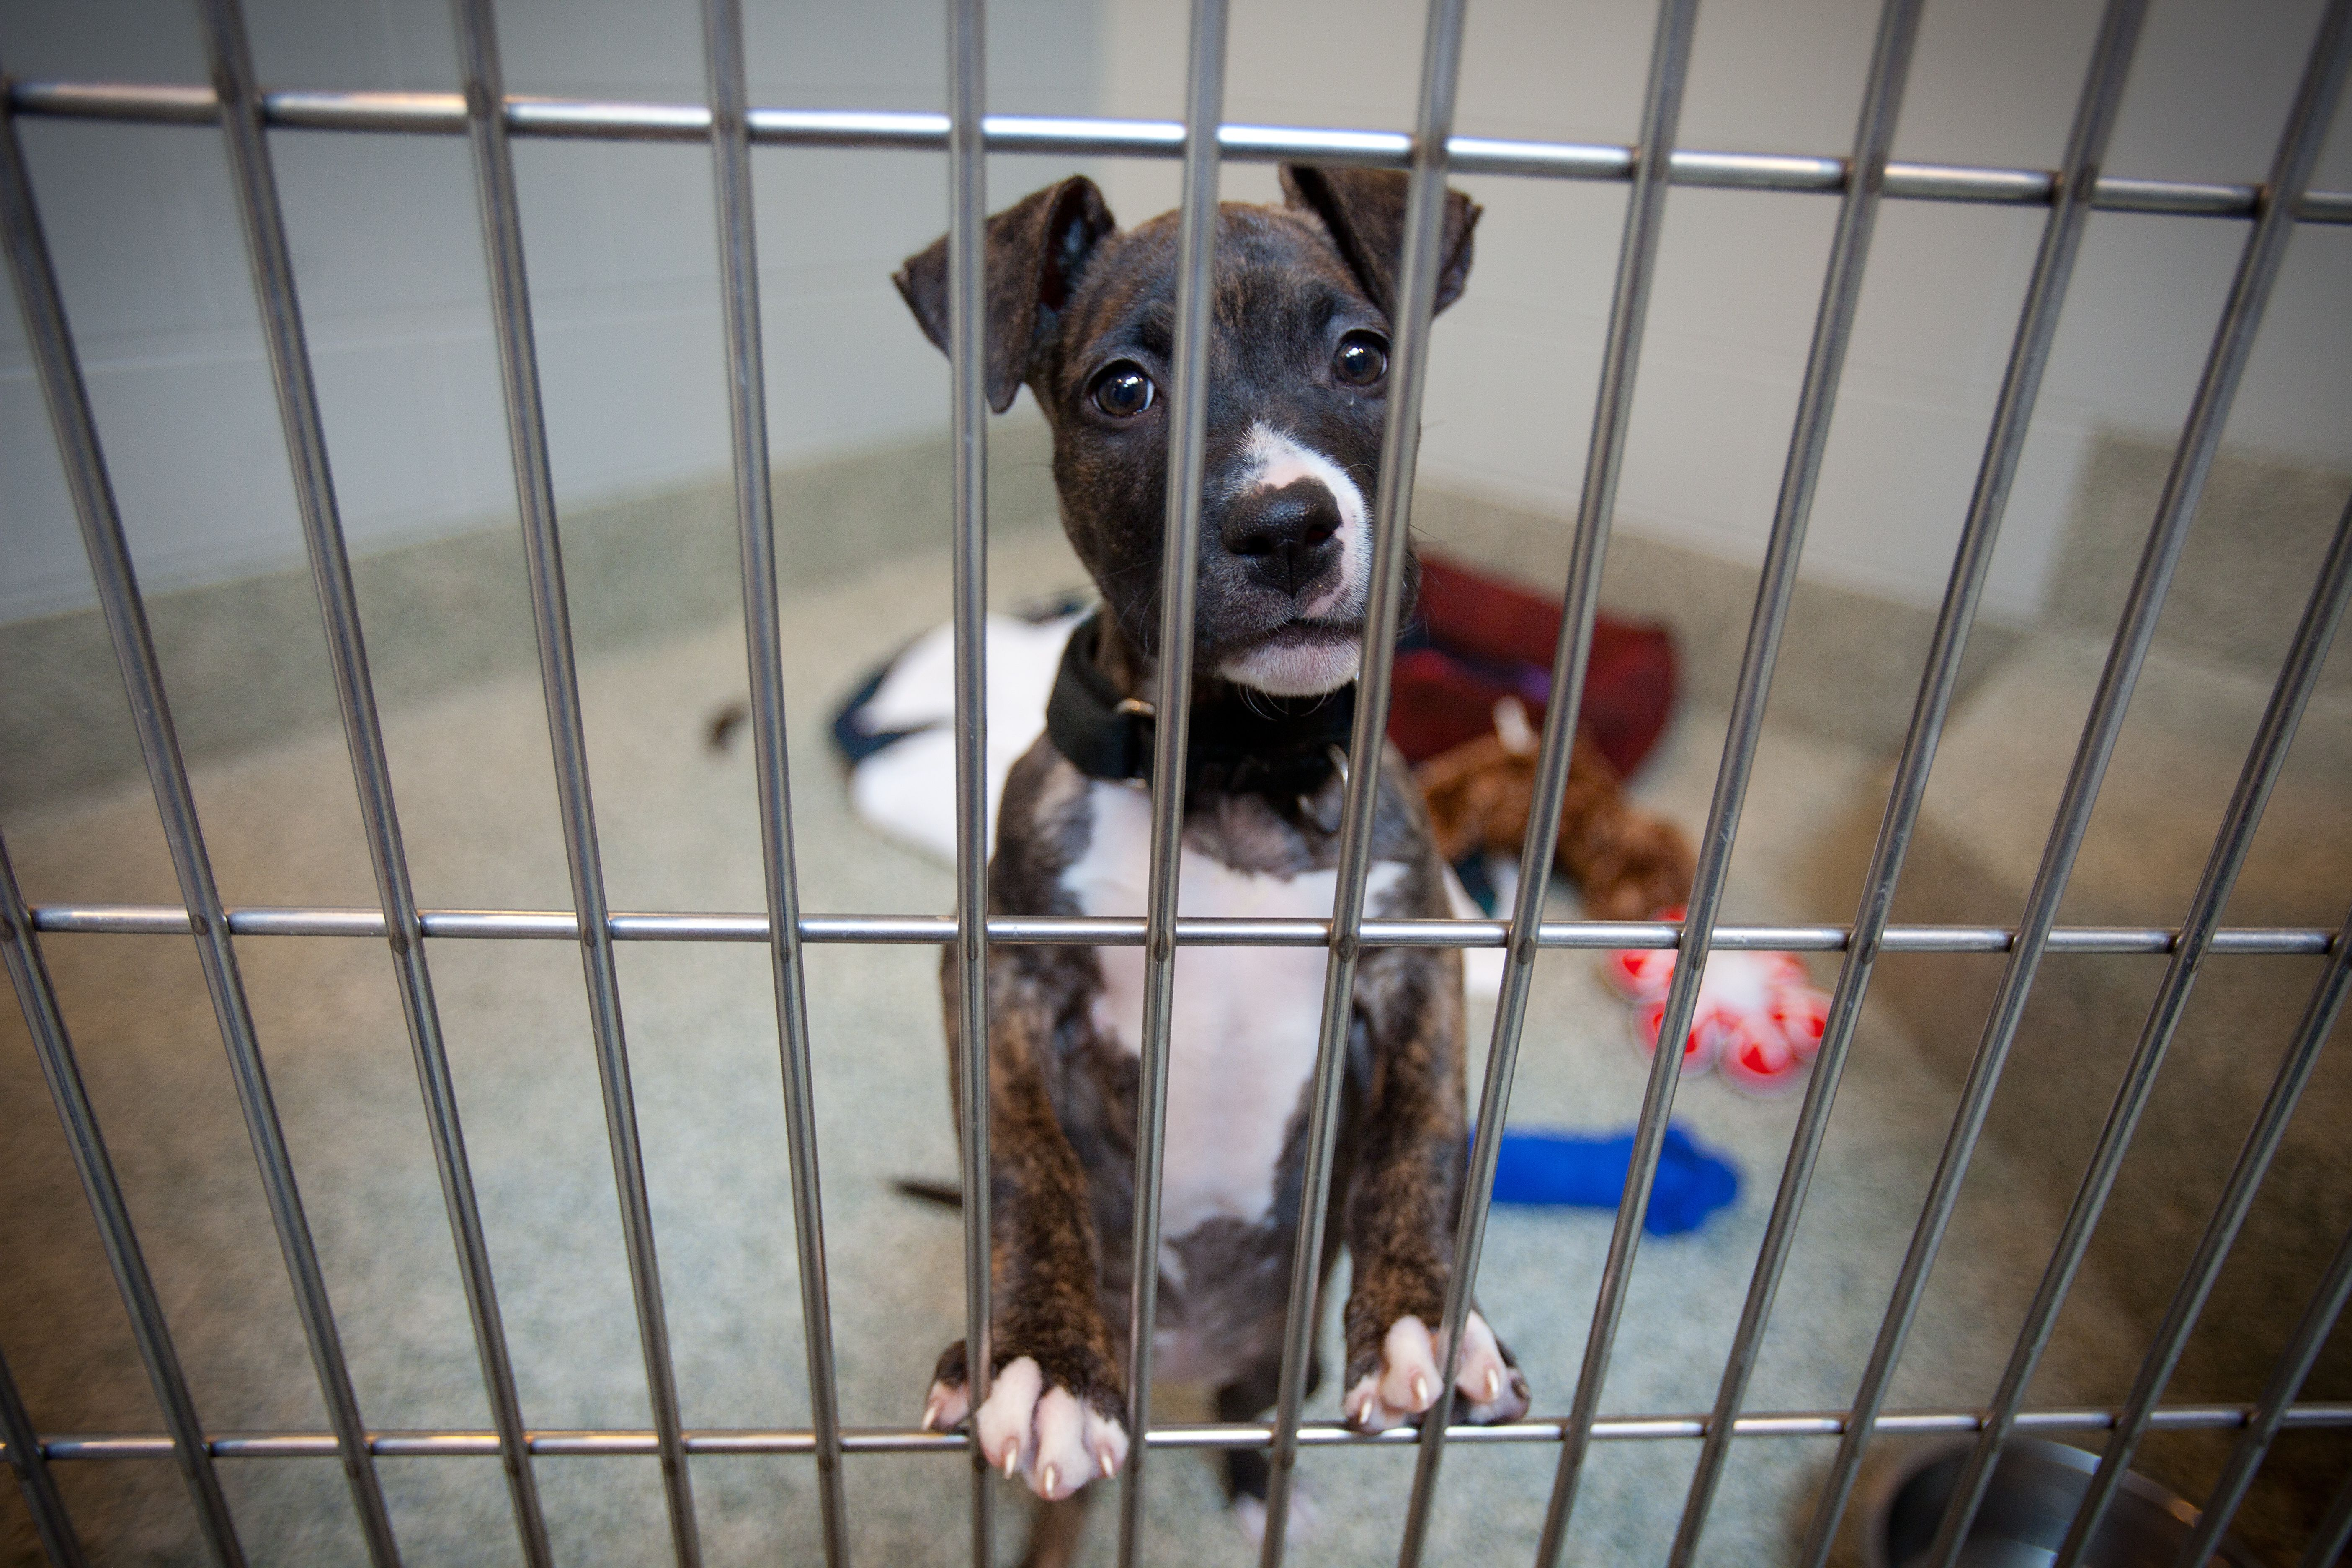 This New Site Will Help You Find The Perfect Dog Child Friendly Dogs Shelter Dogs The Perfect Dog